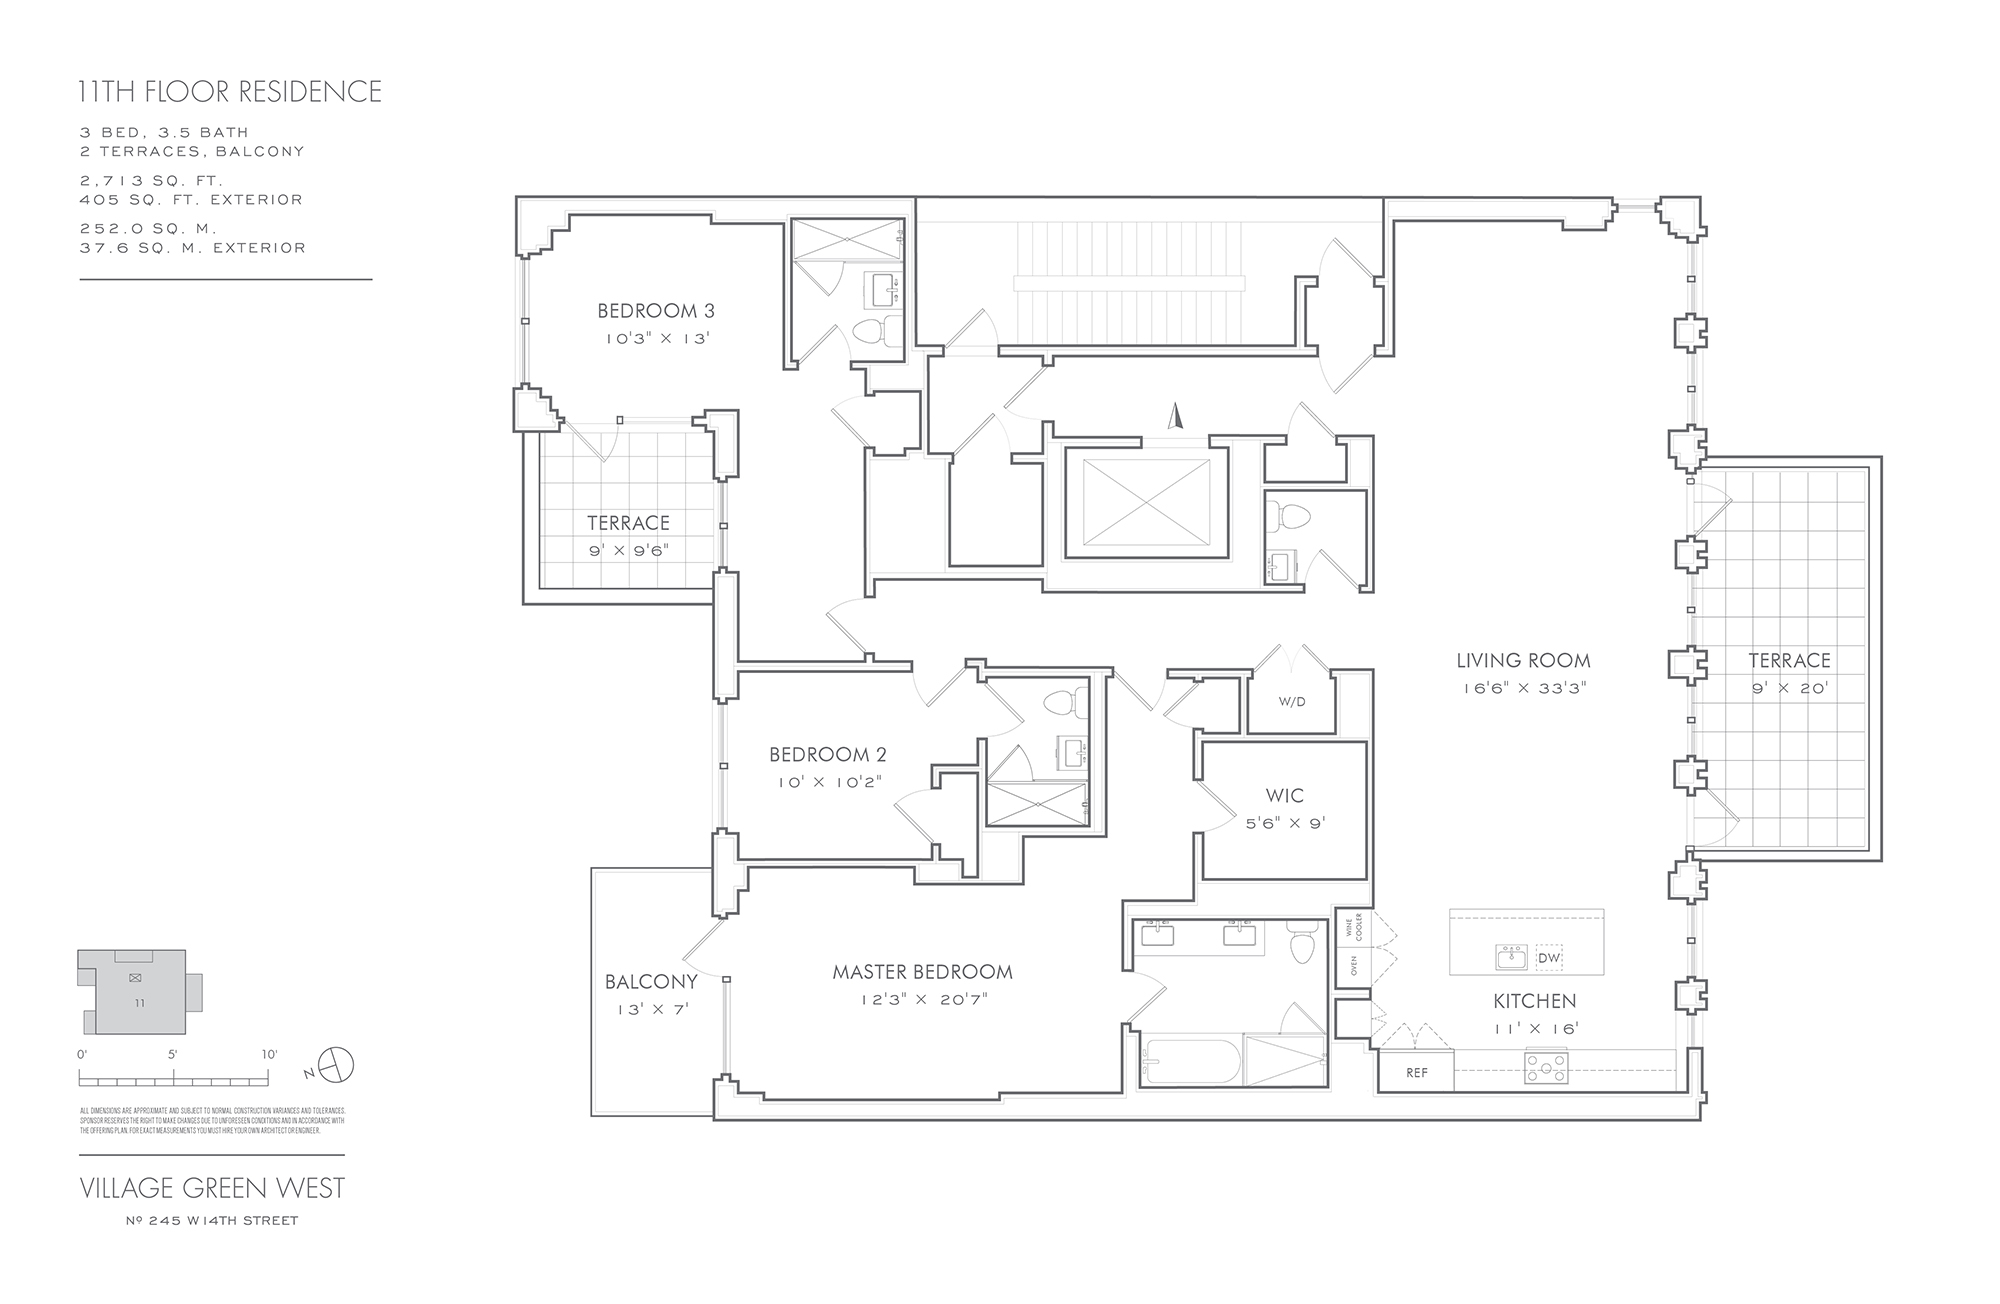 Hudson Tea Floor Plans Hudson Tea Floor Plan Inside The